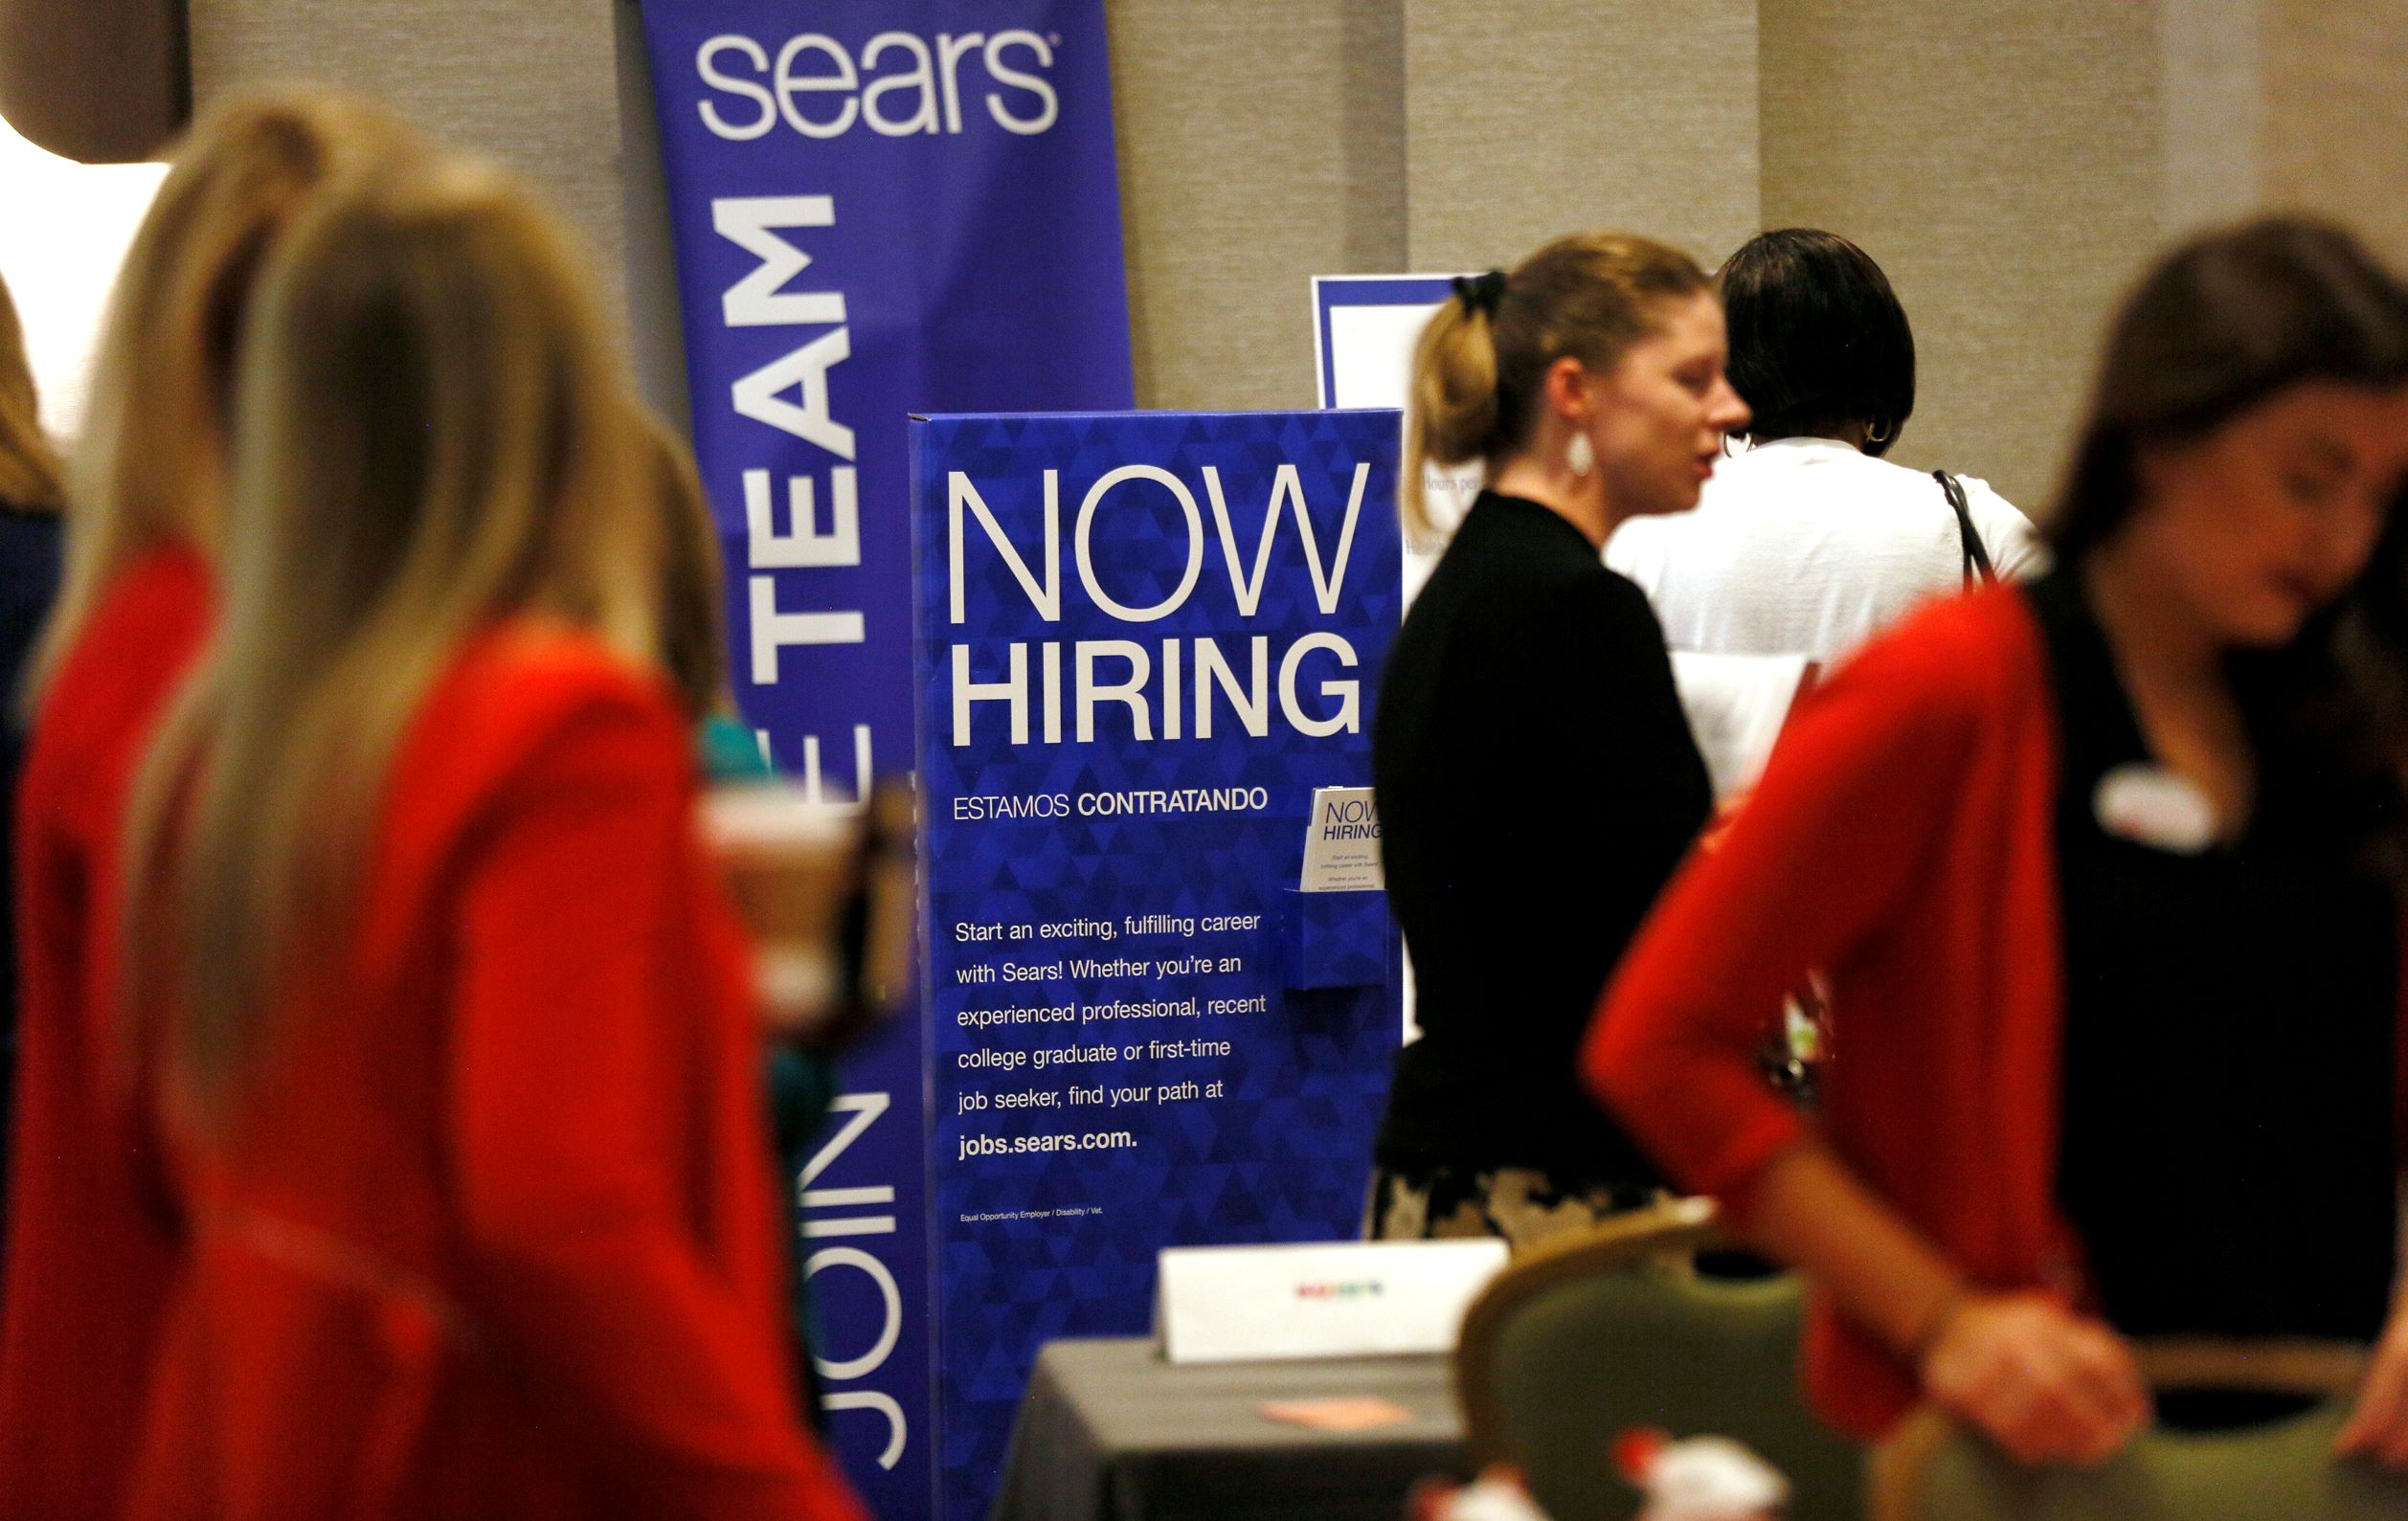 U.S. unemployment rate hitting higher Thus leads to moderate job growth